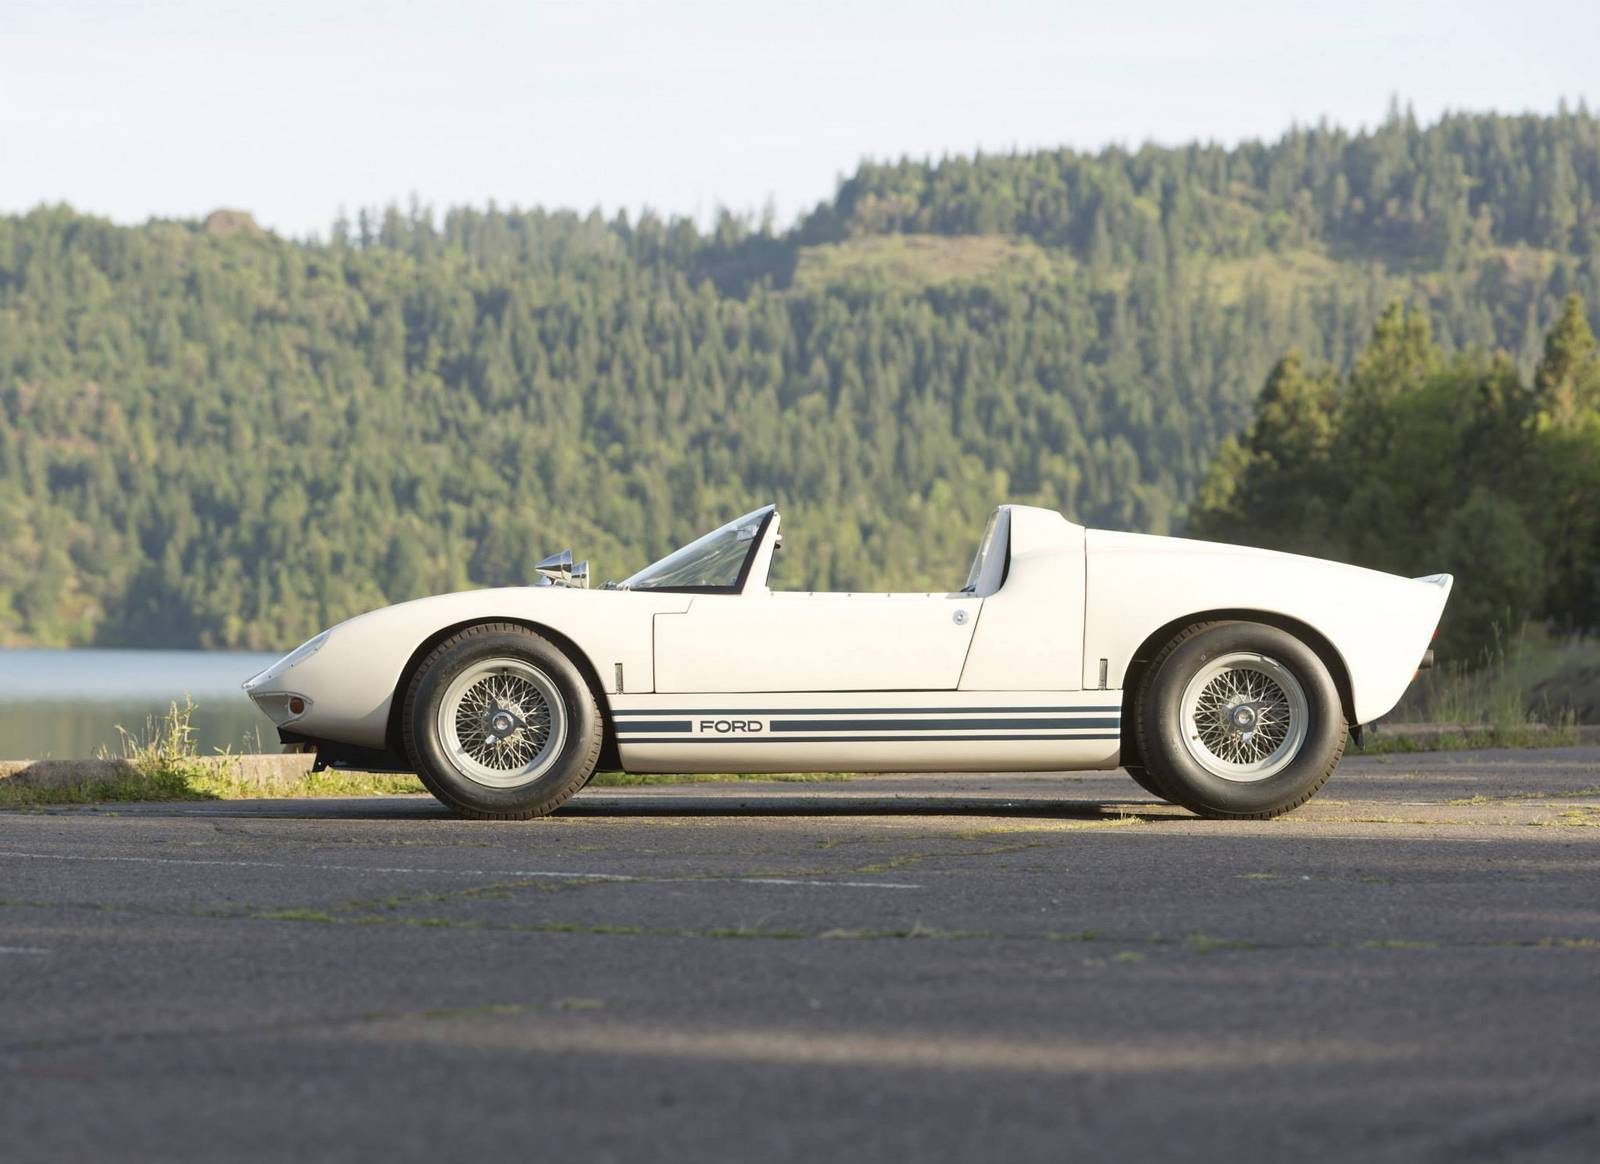 1965 Ford GT40 Roadster Prototype Sells for $6.3 Million at RM Auctions - GTspirit